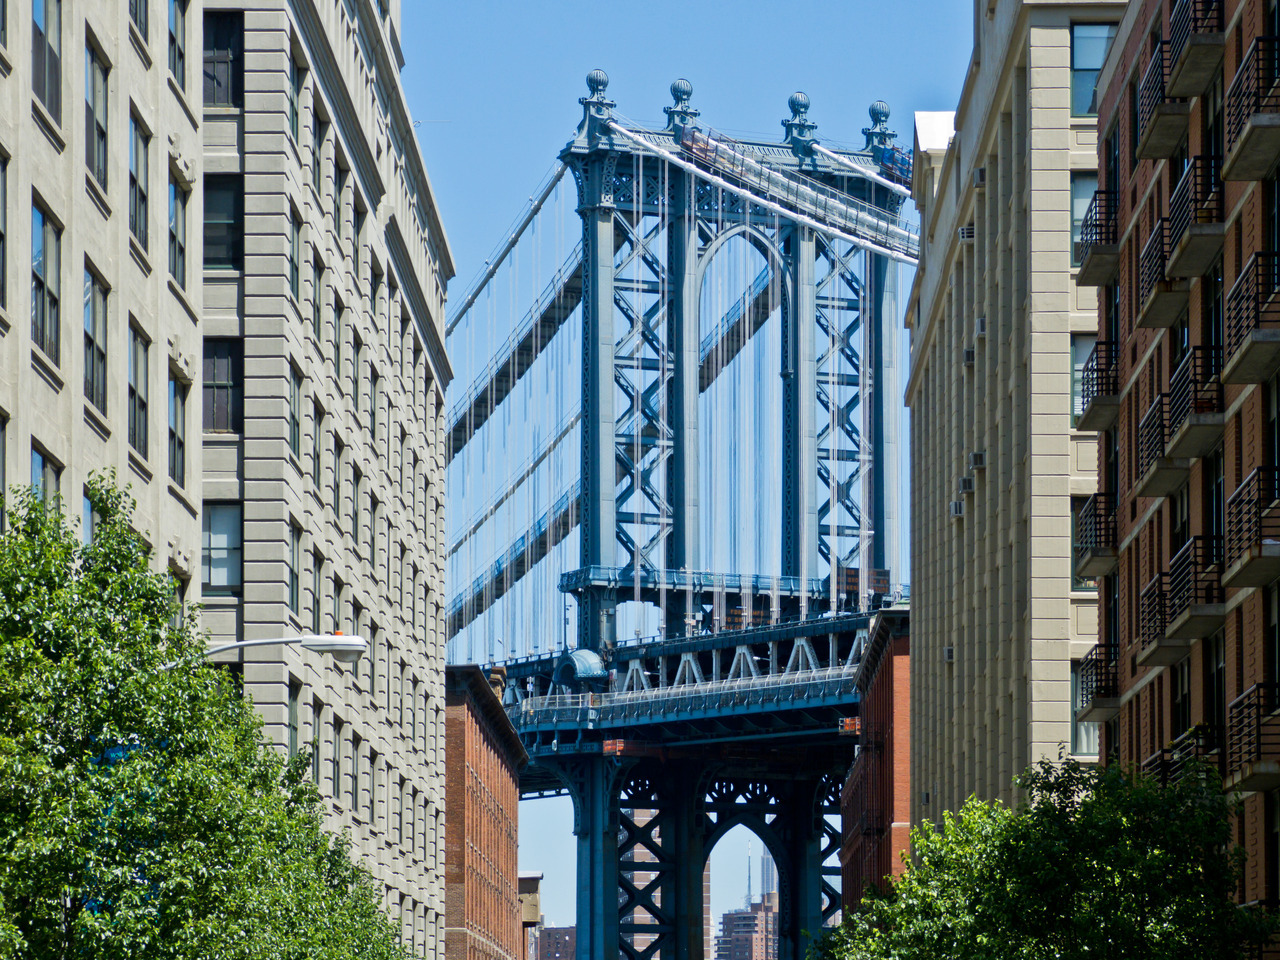 The Manhattan Bridge from Adams St. in D.U.M.B.O., New York.